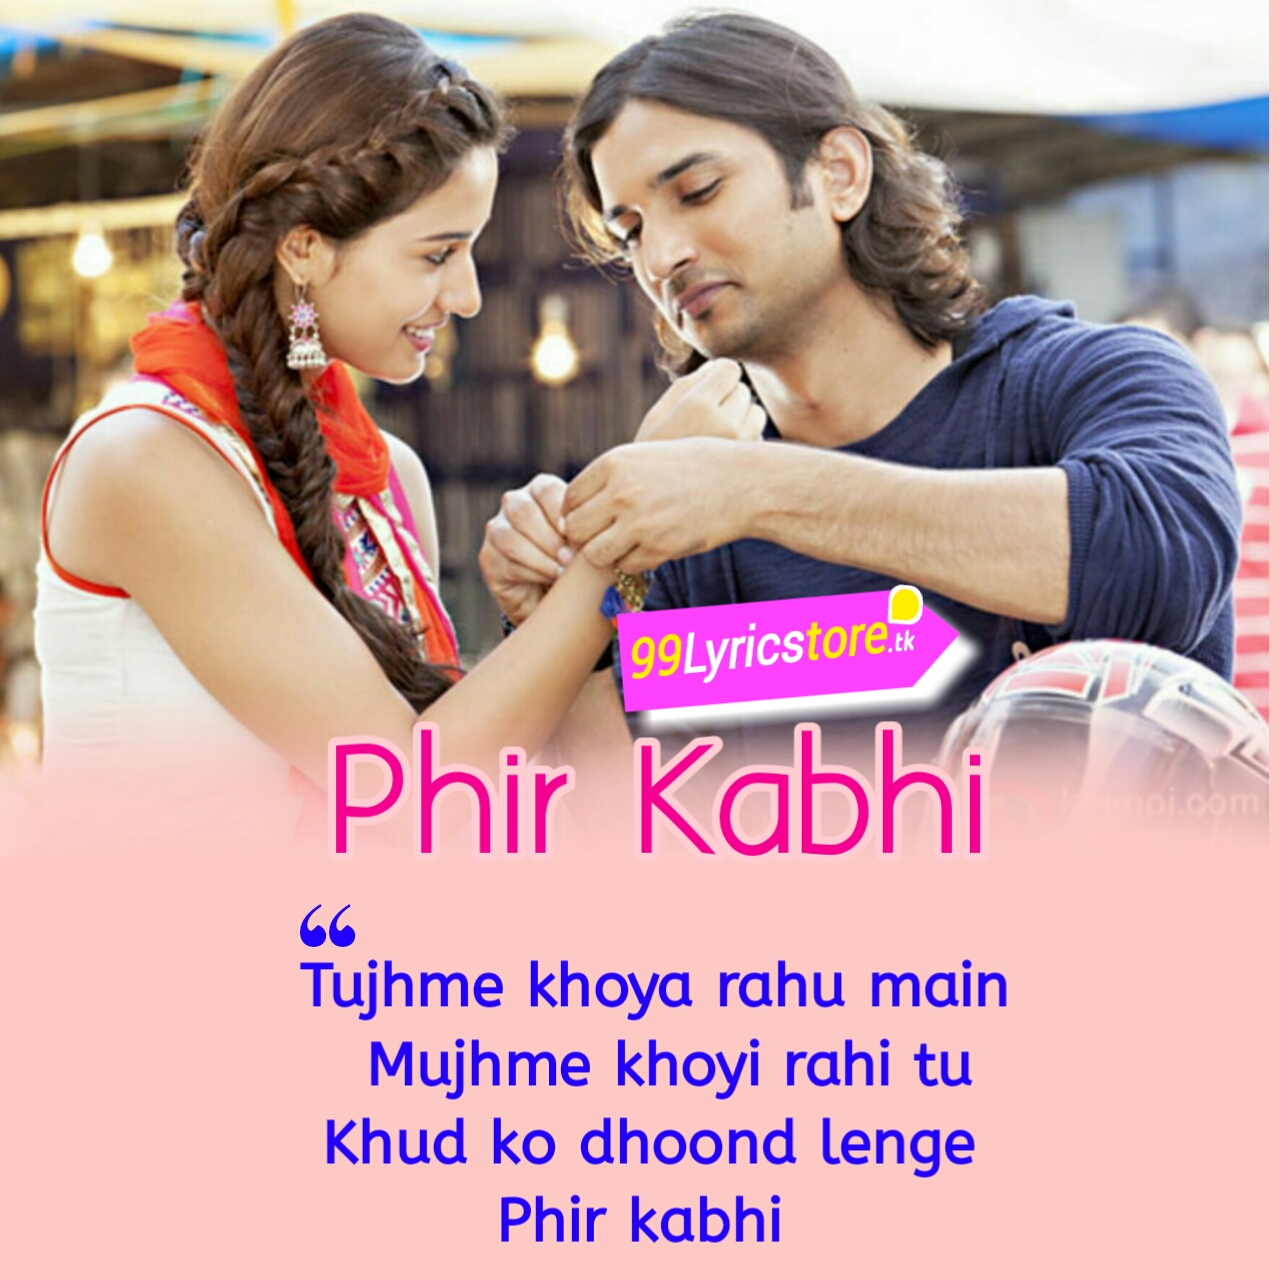 Arijit Singh Song Lyrics, Disha Patani Images, Shushant Singh Rajput Song Lyrics, Love Quotes in Hindi, Top Bollywood movie Song Lyrics, Top Arijit Singh Song Lyrics, Hindi Song Lyrics